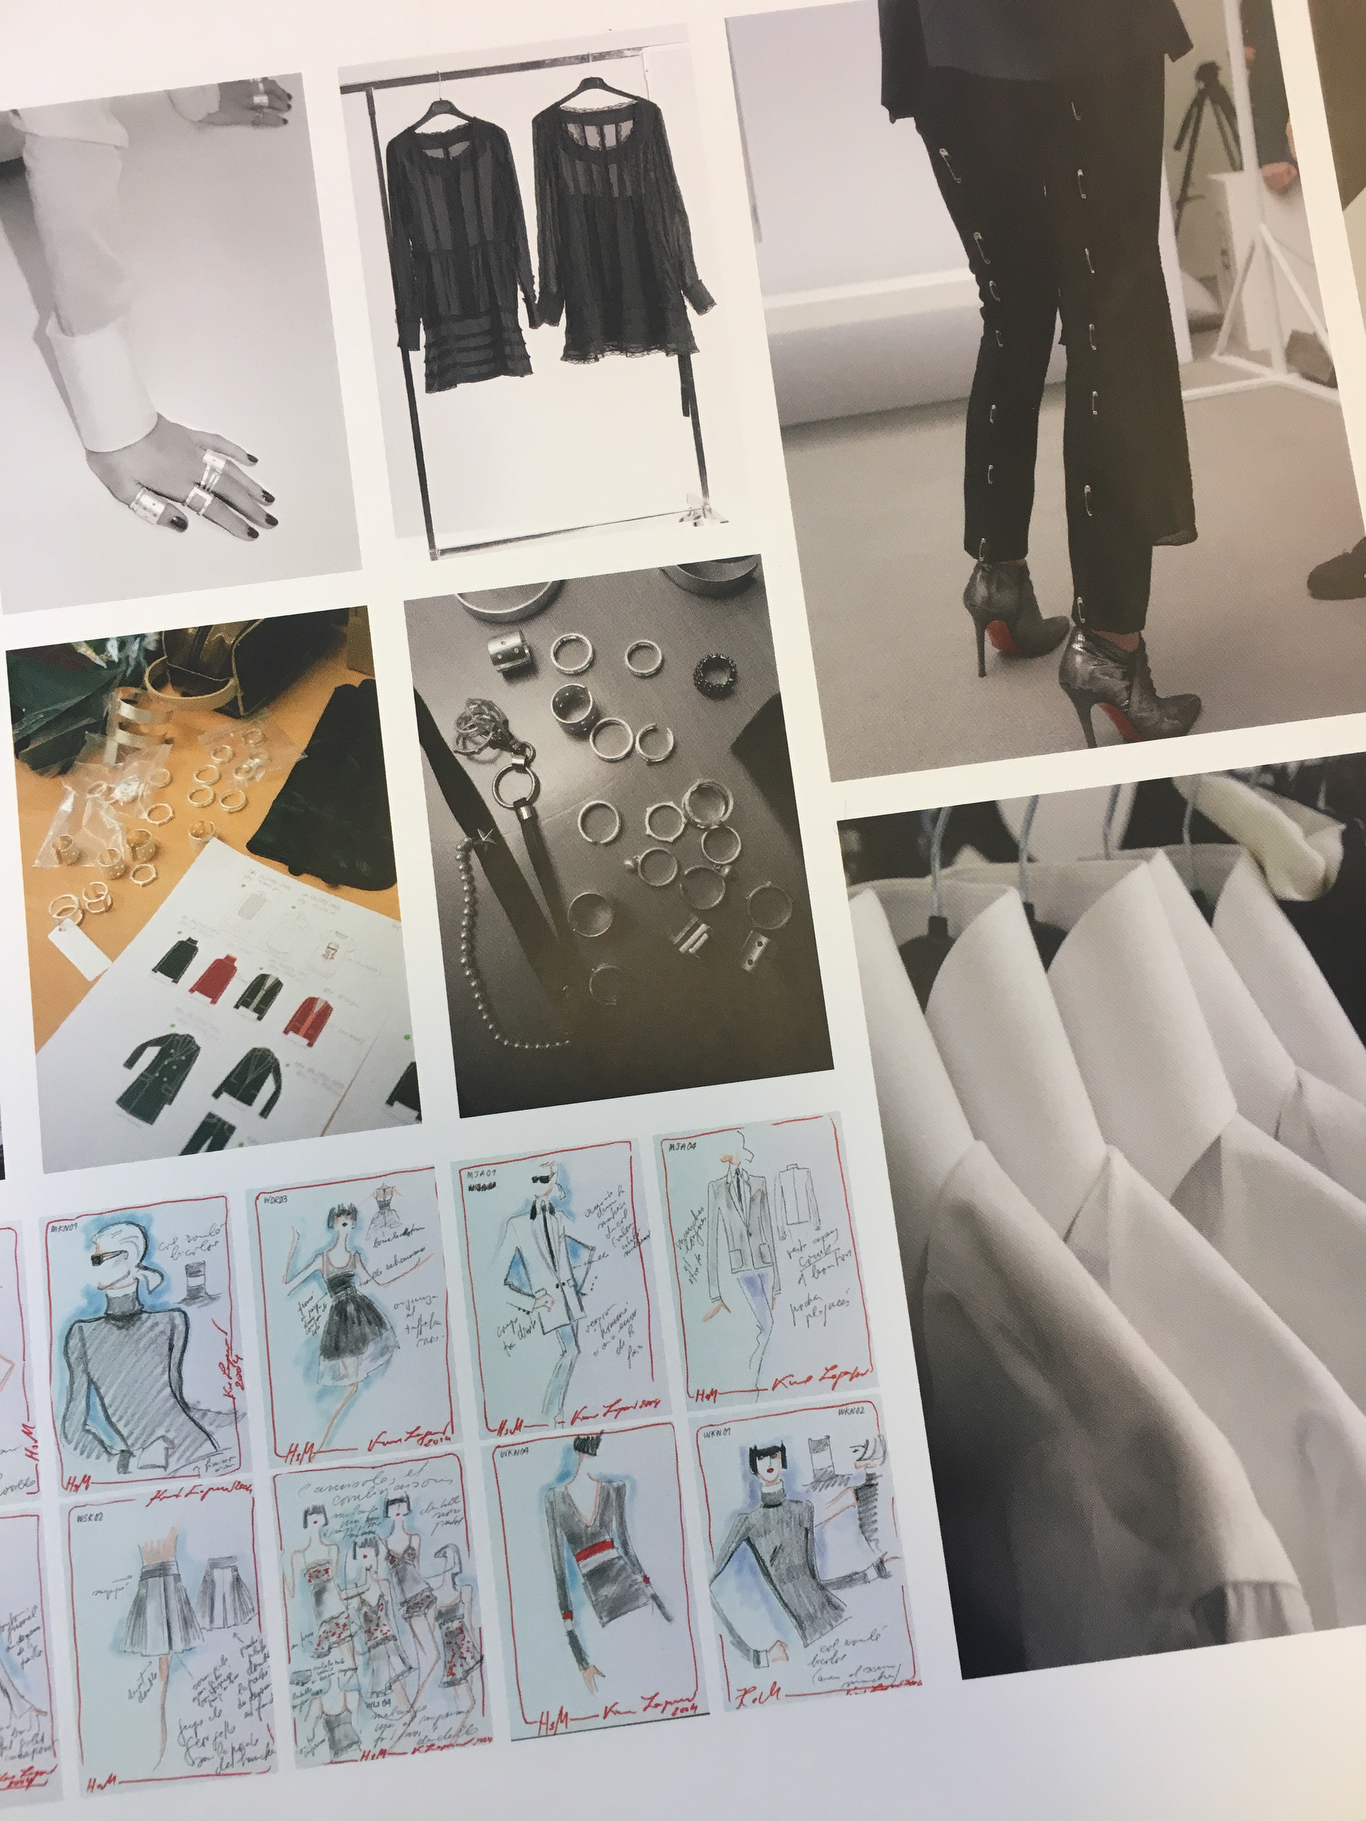 Karl Lagerfeld's sketches for the H&M collection